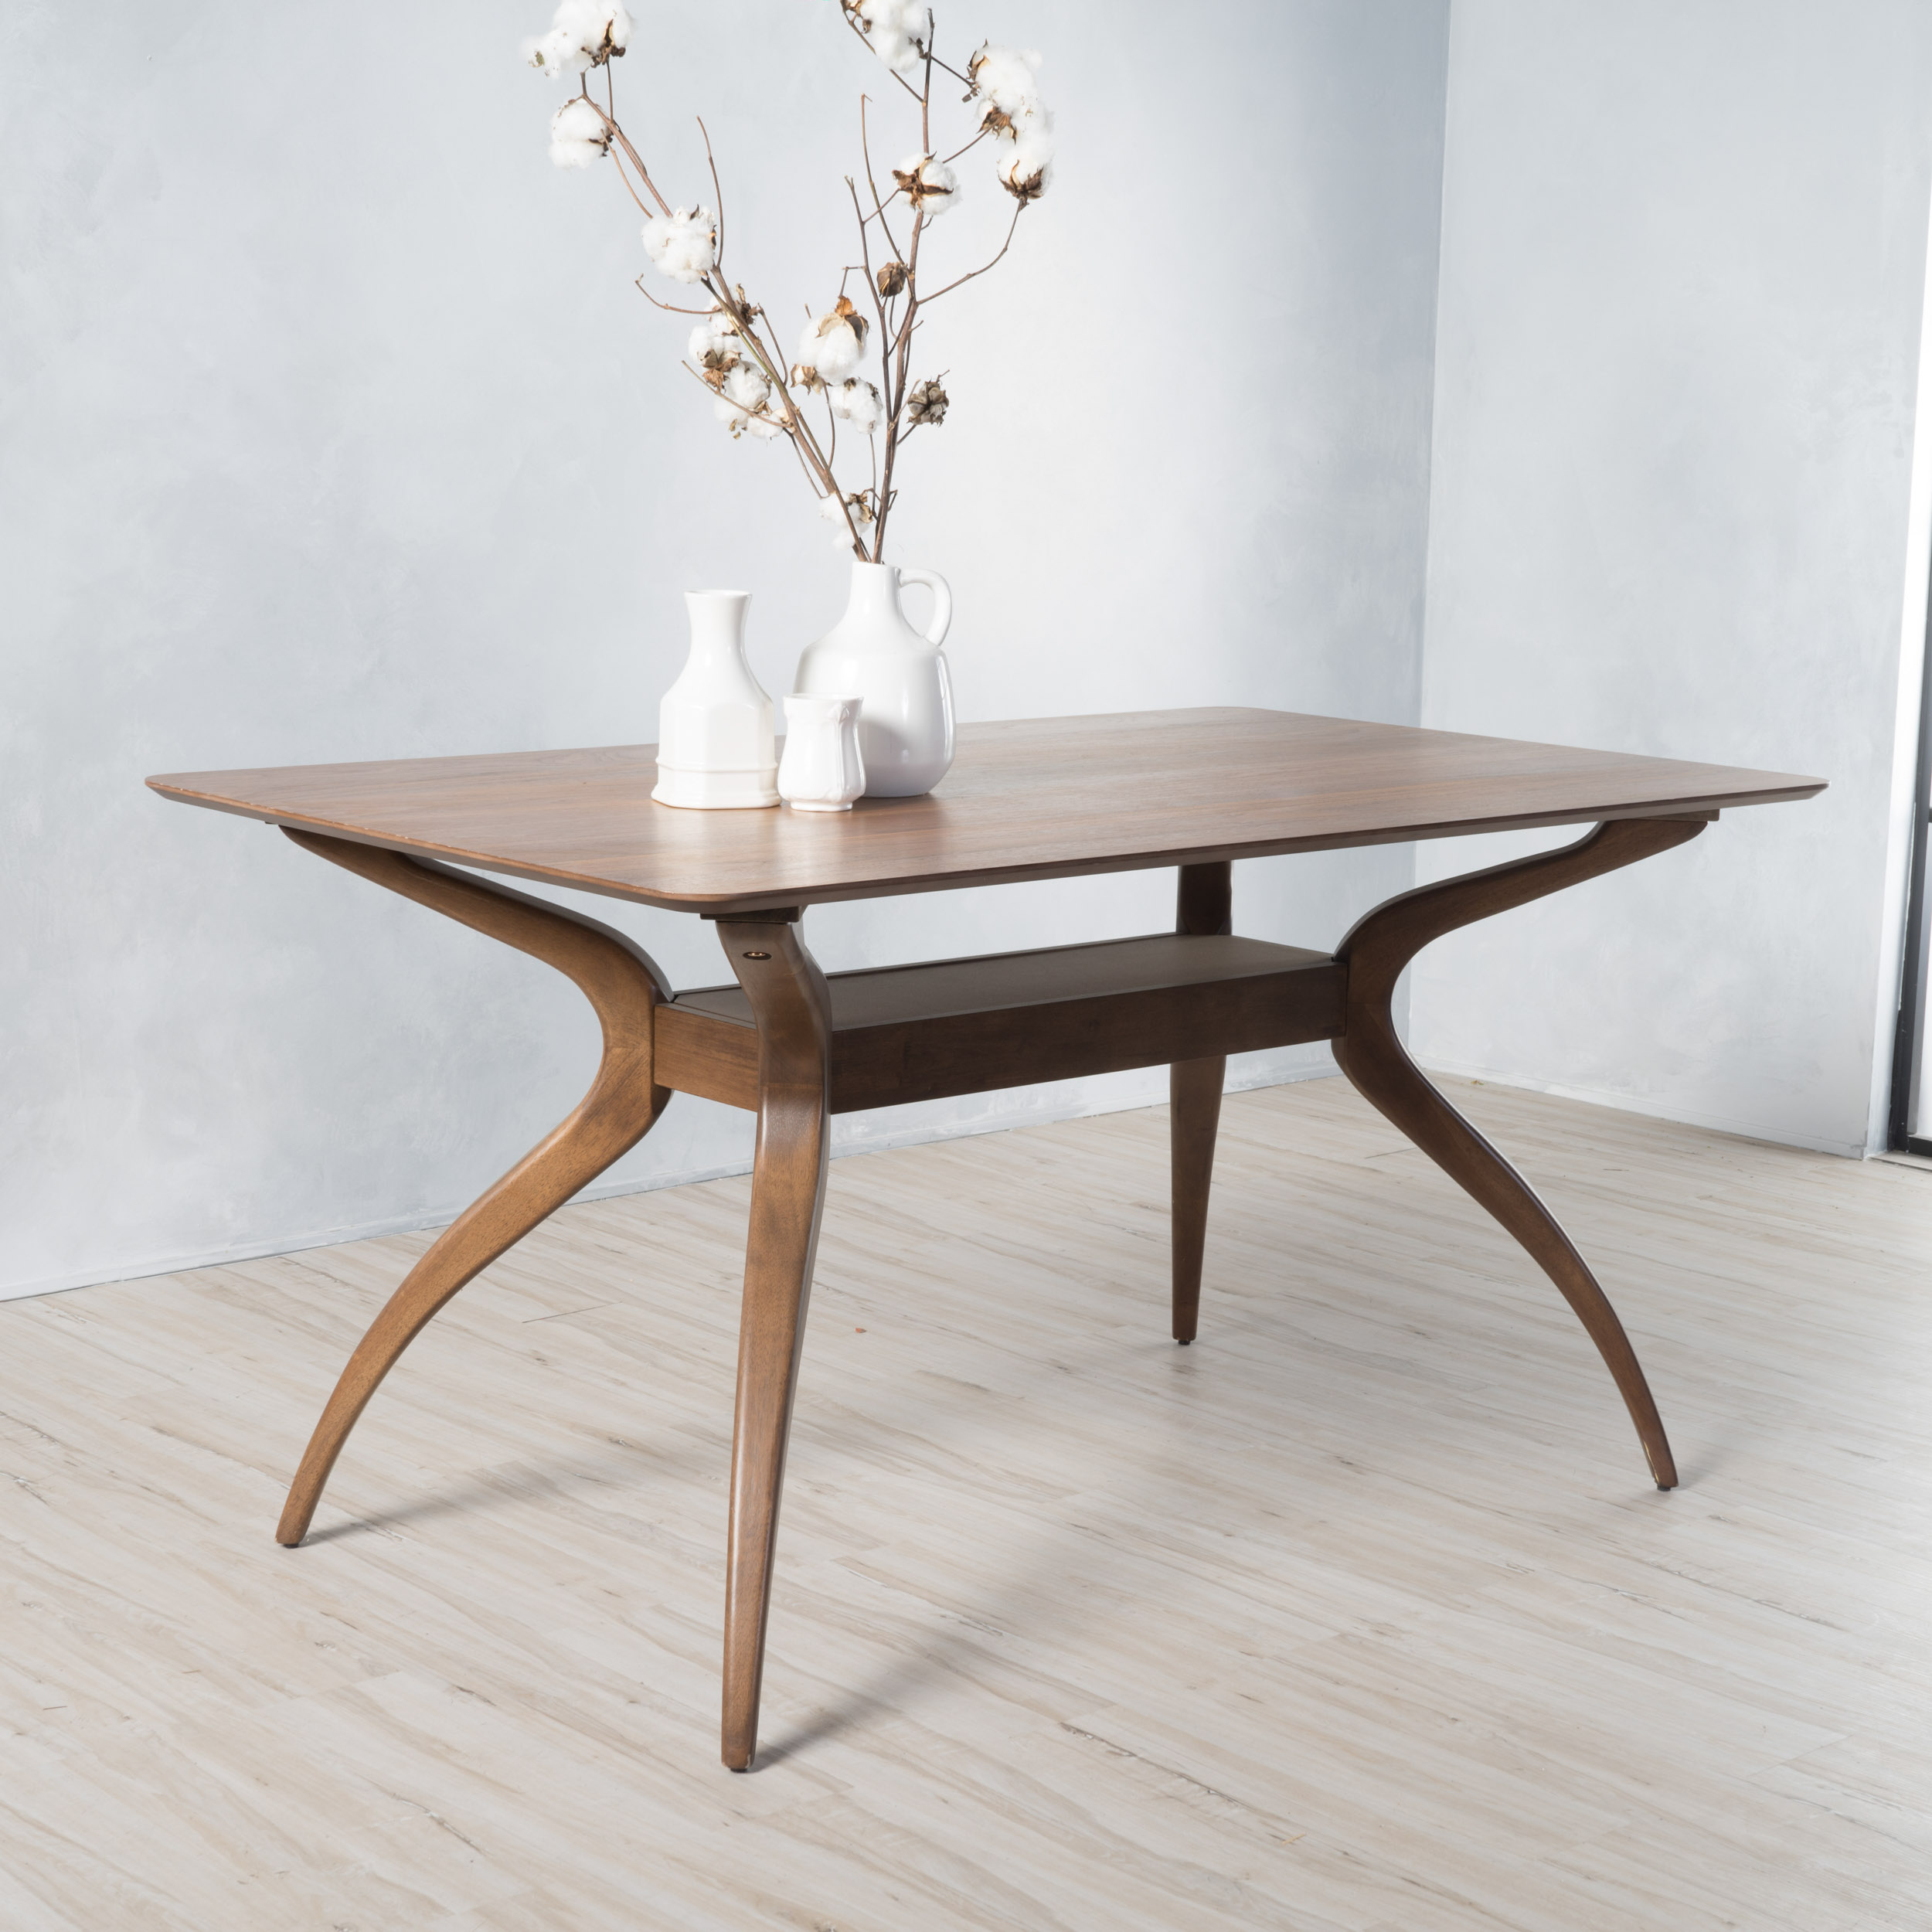 Noble house logan natural walnut finish wood dining table walmart com